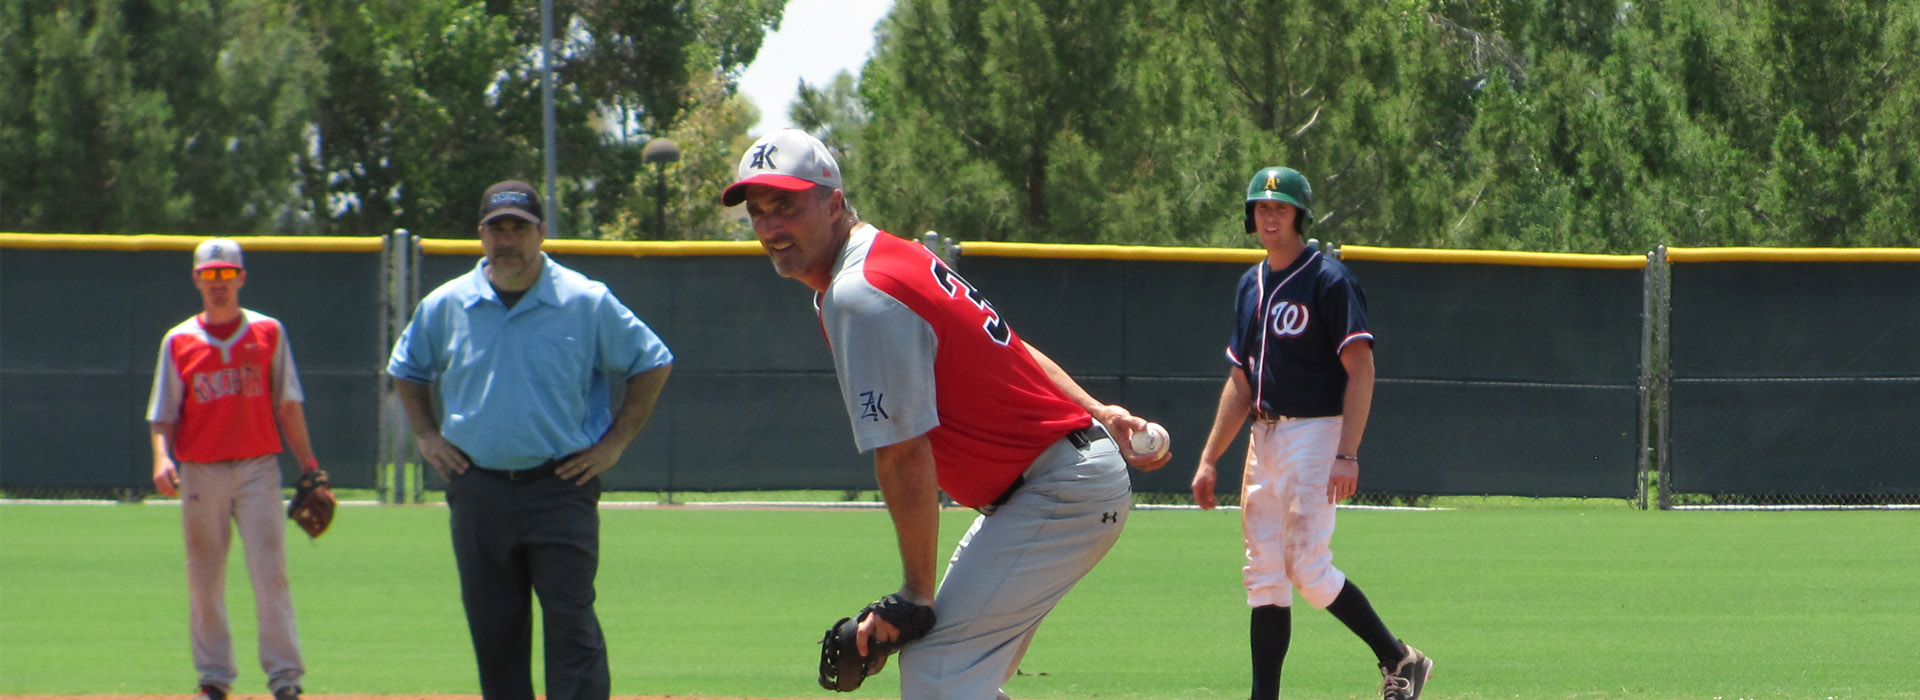 Arizona-Mens-Senior-Baseball-League-AZMSBL-Homepage11